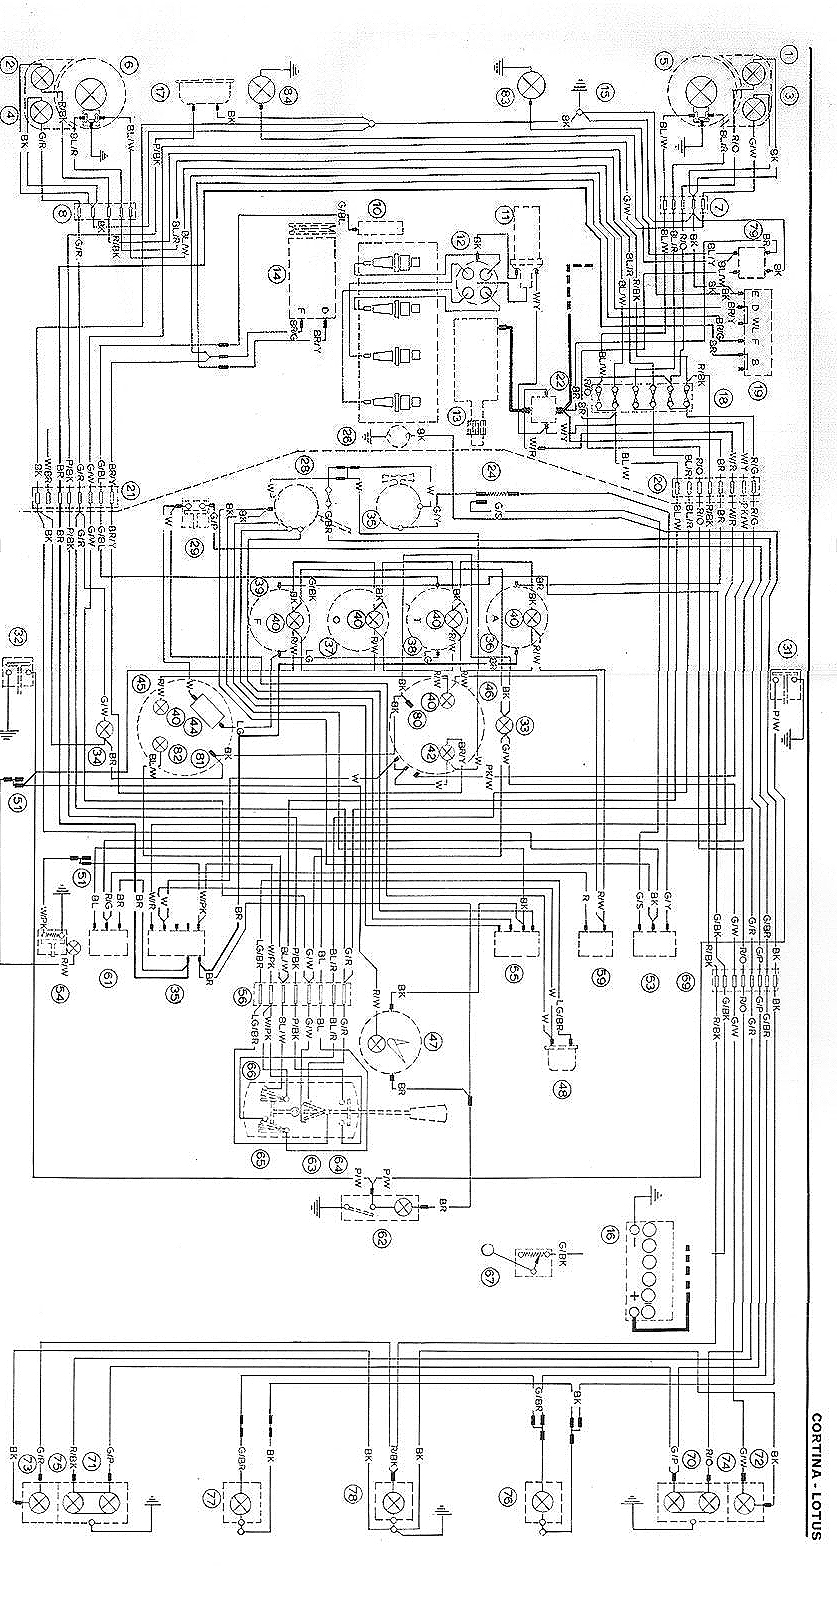 medium resolution of ford focus mk1 wiring diagram pdf auto engine and parts diagram 1937 ford wiring diagram ford